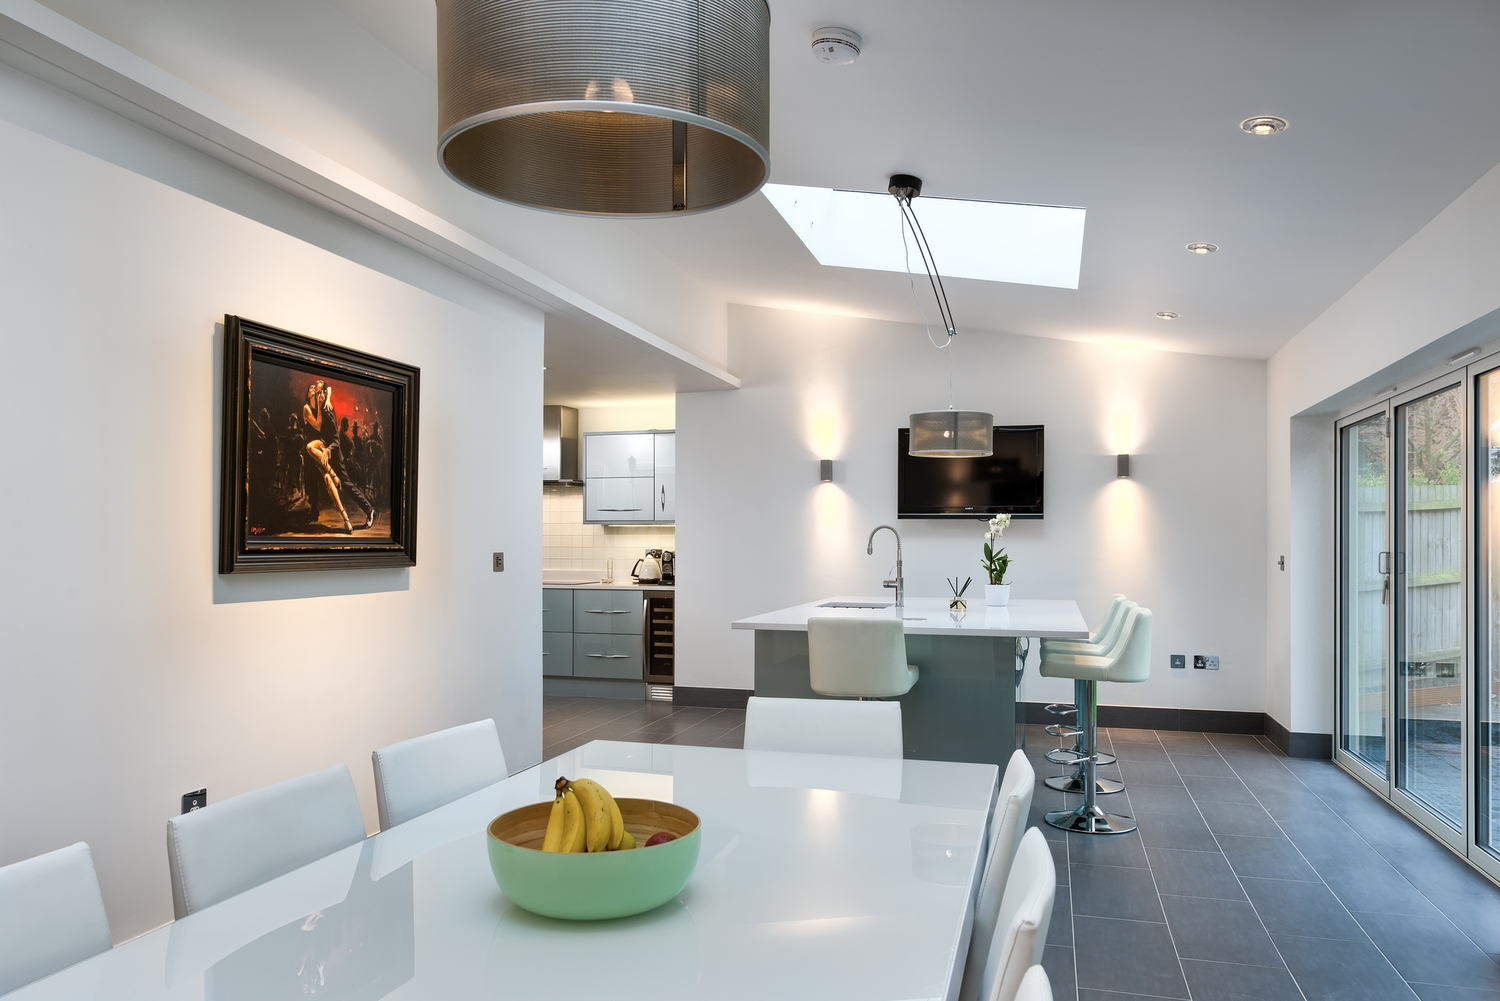 Dining room table and of a lighting house extension by Harvey Norman Architects Cambridge